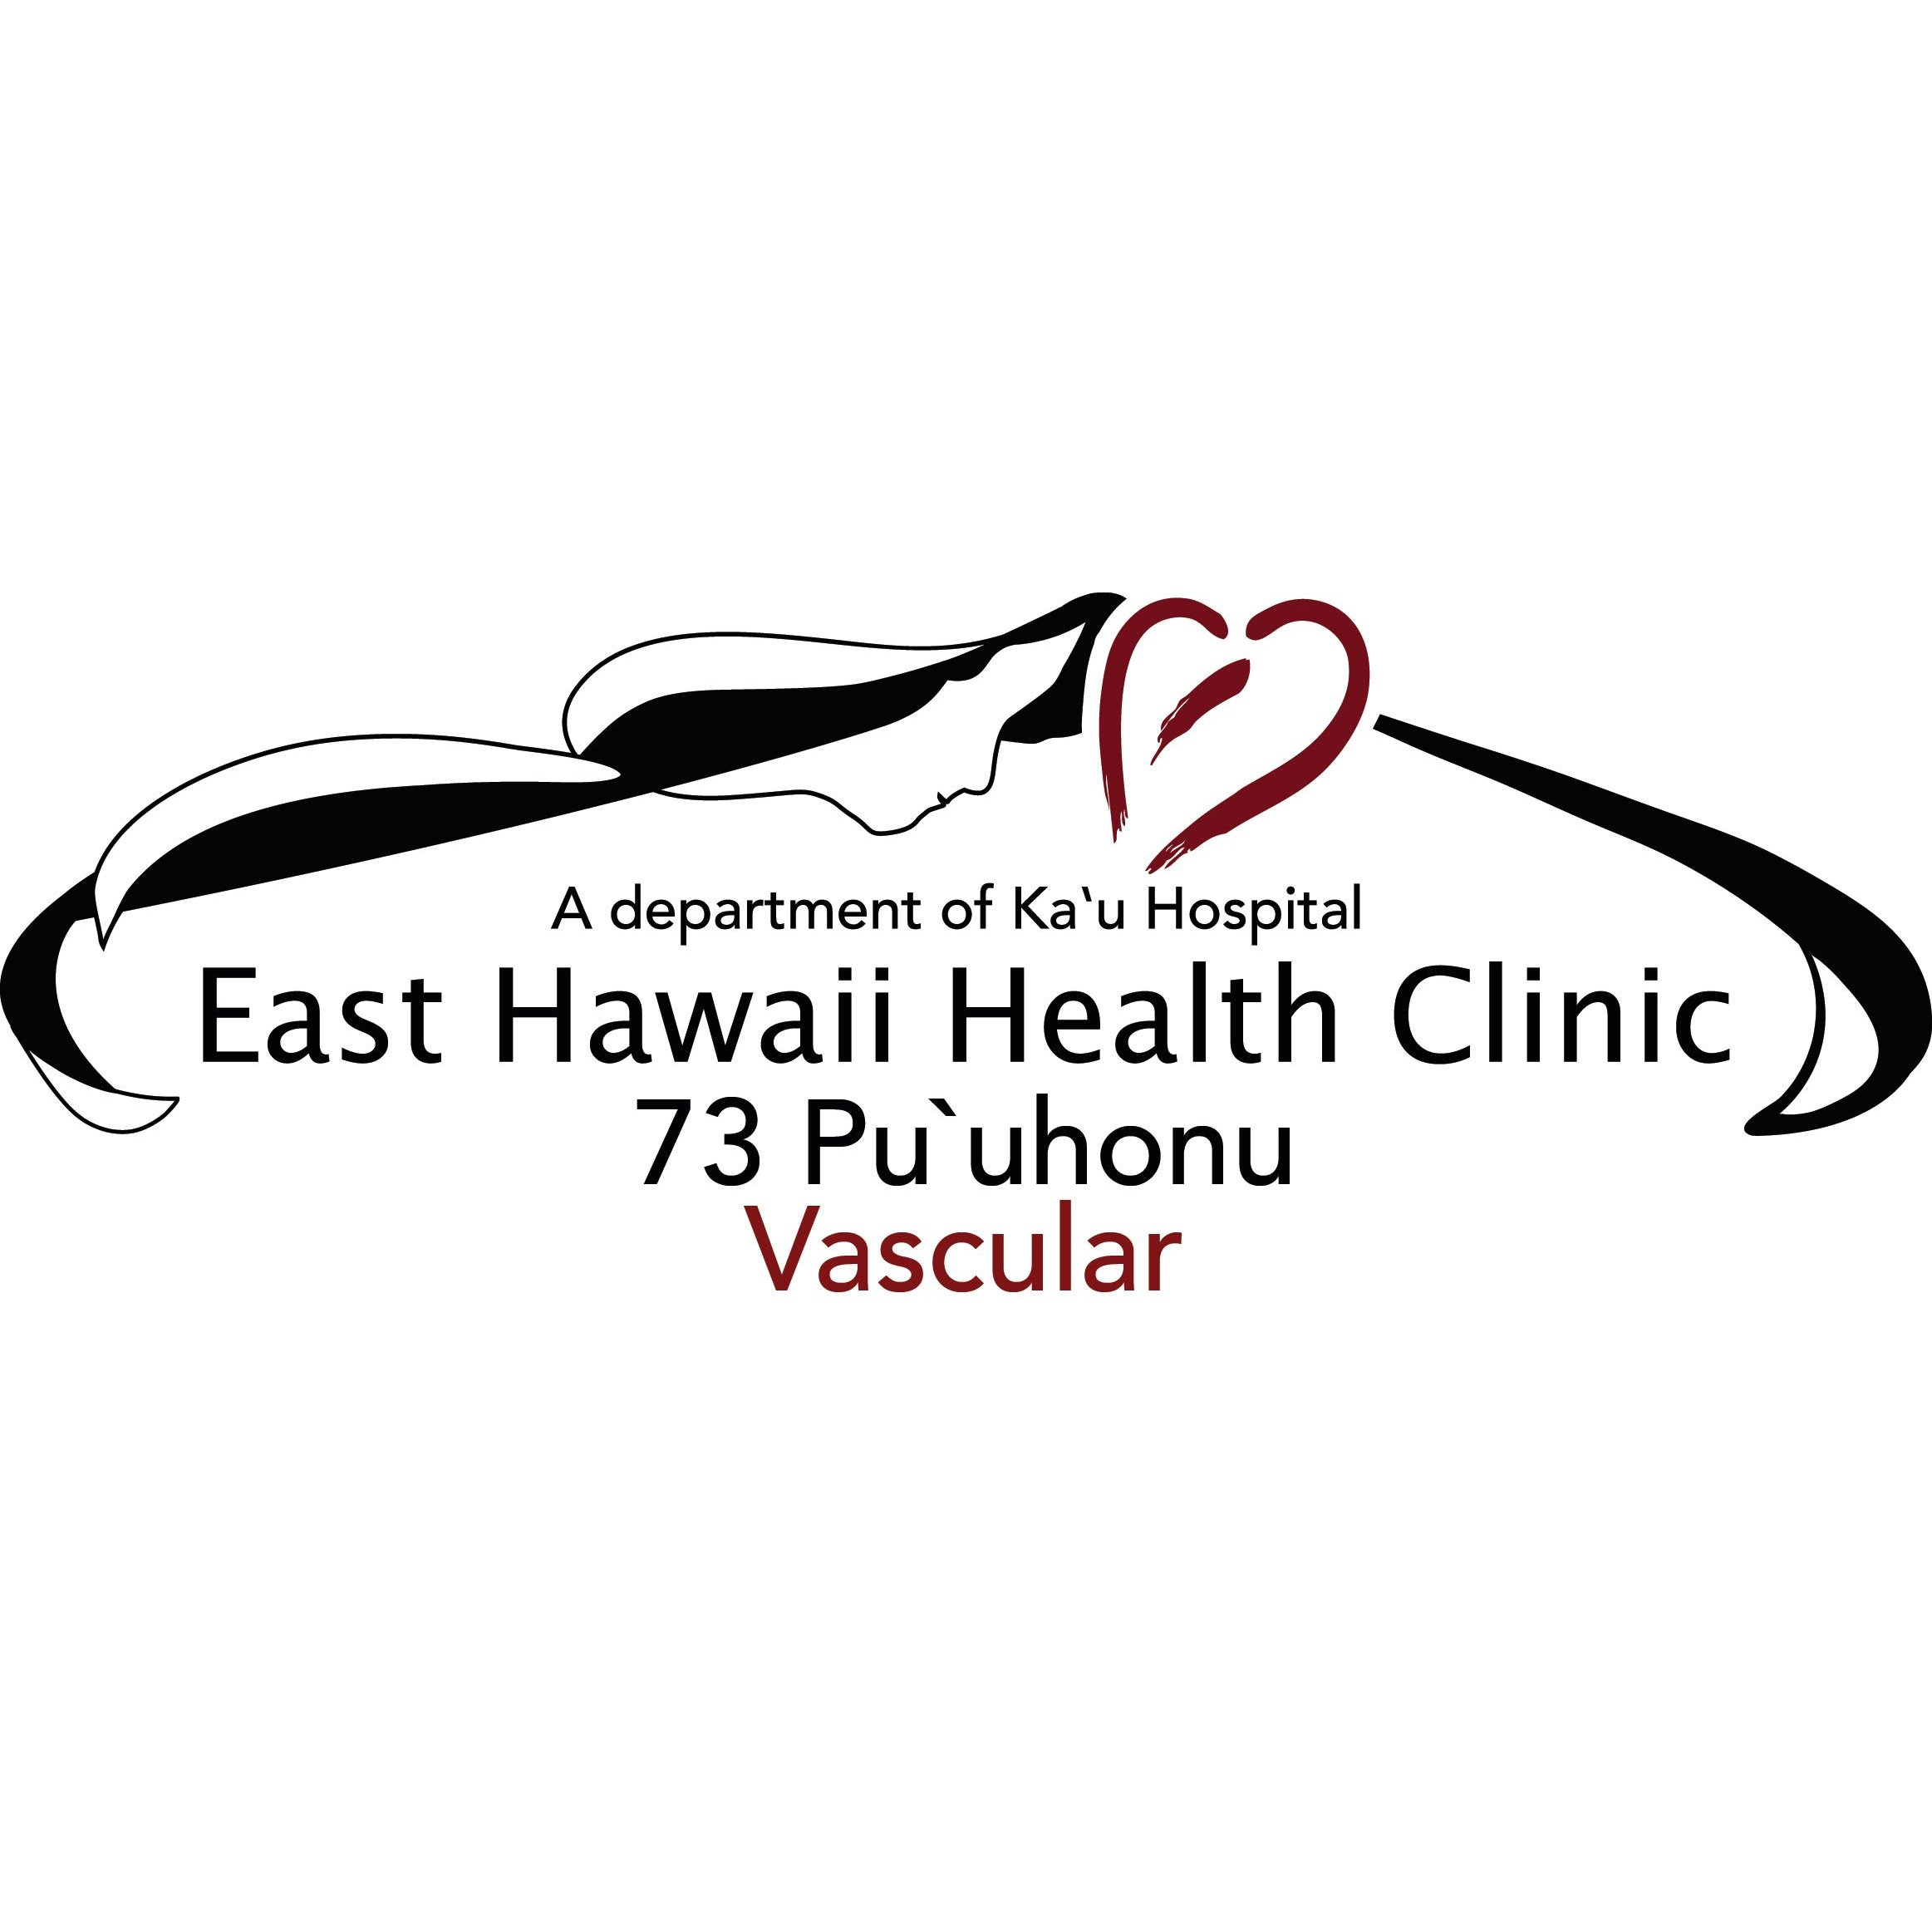 East Hawaii Health - Vascular